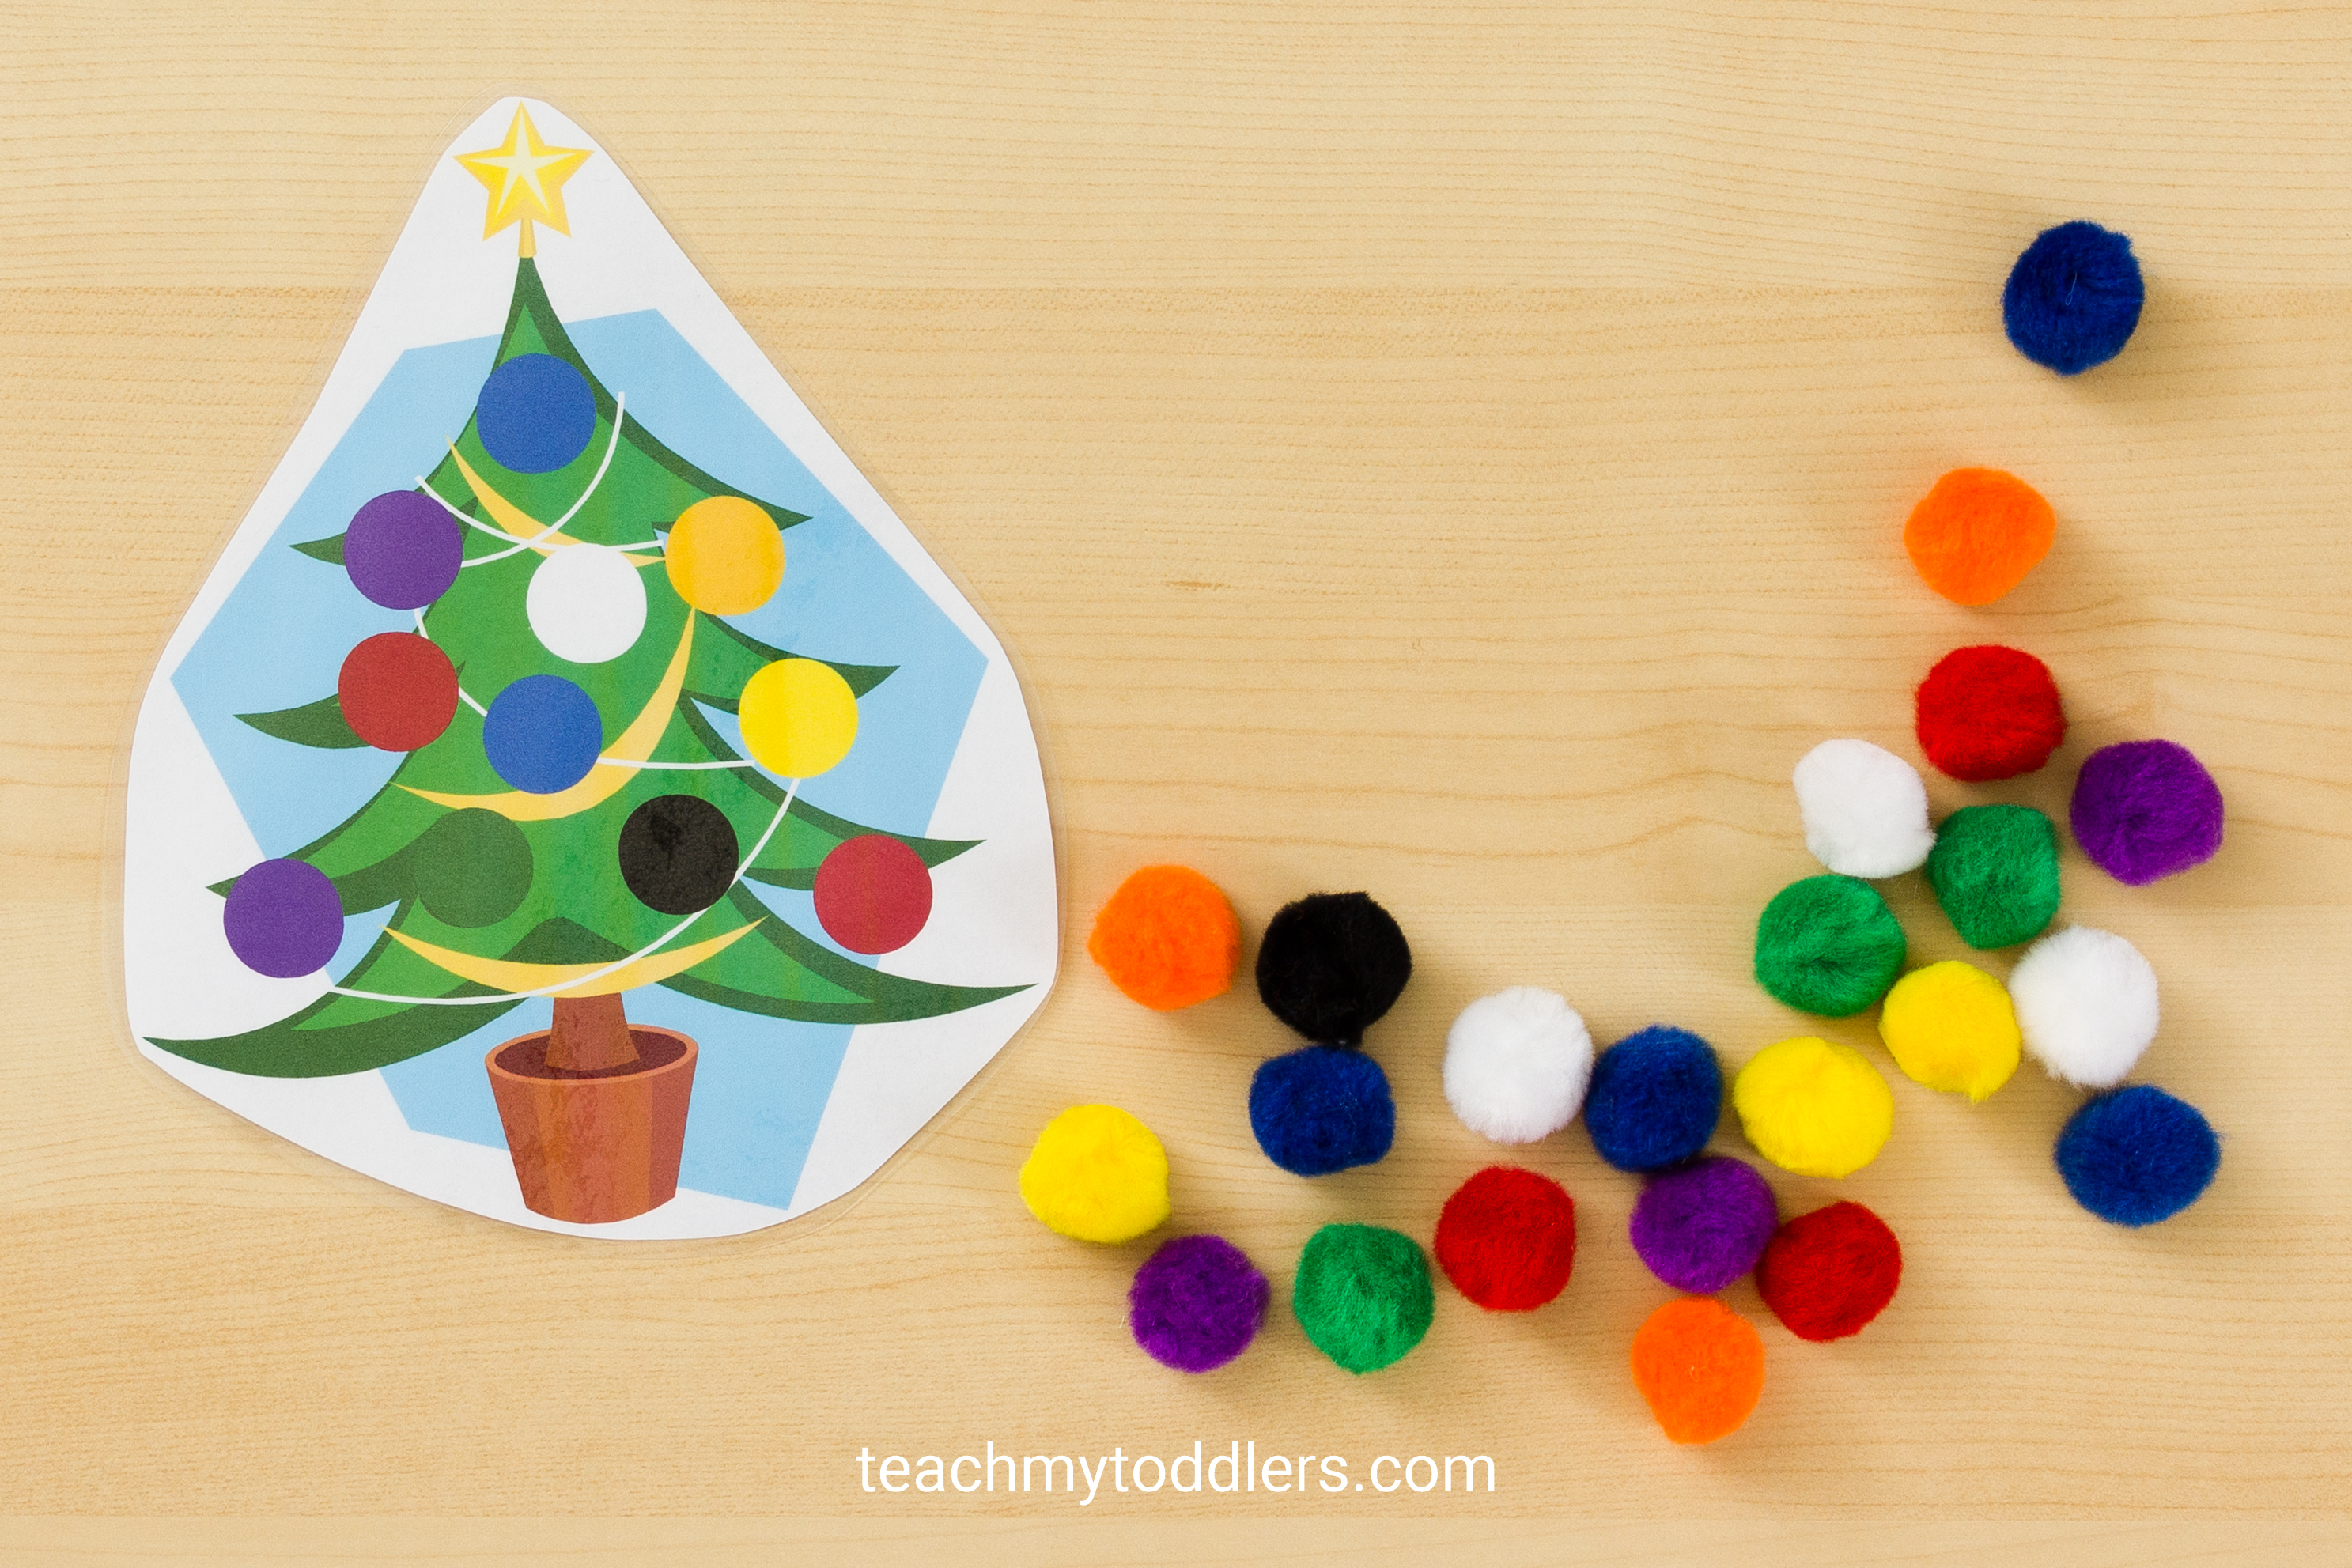 Find out how to use these christmas tree activities to teach toddlers letters and colors